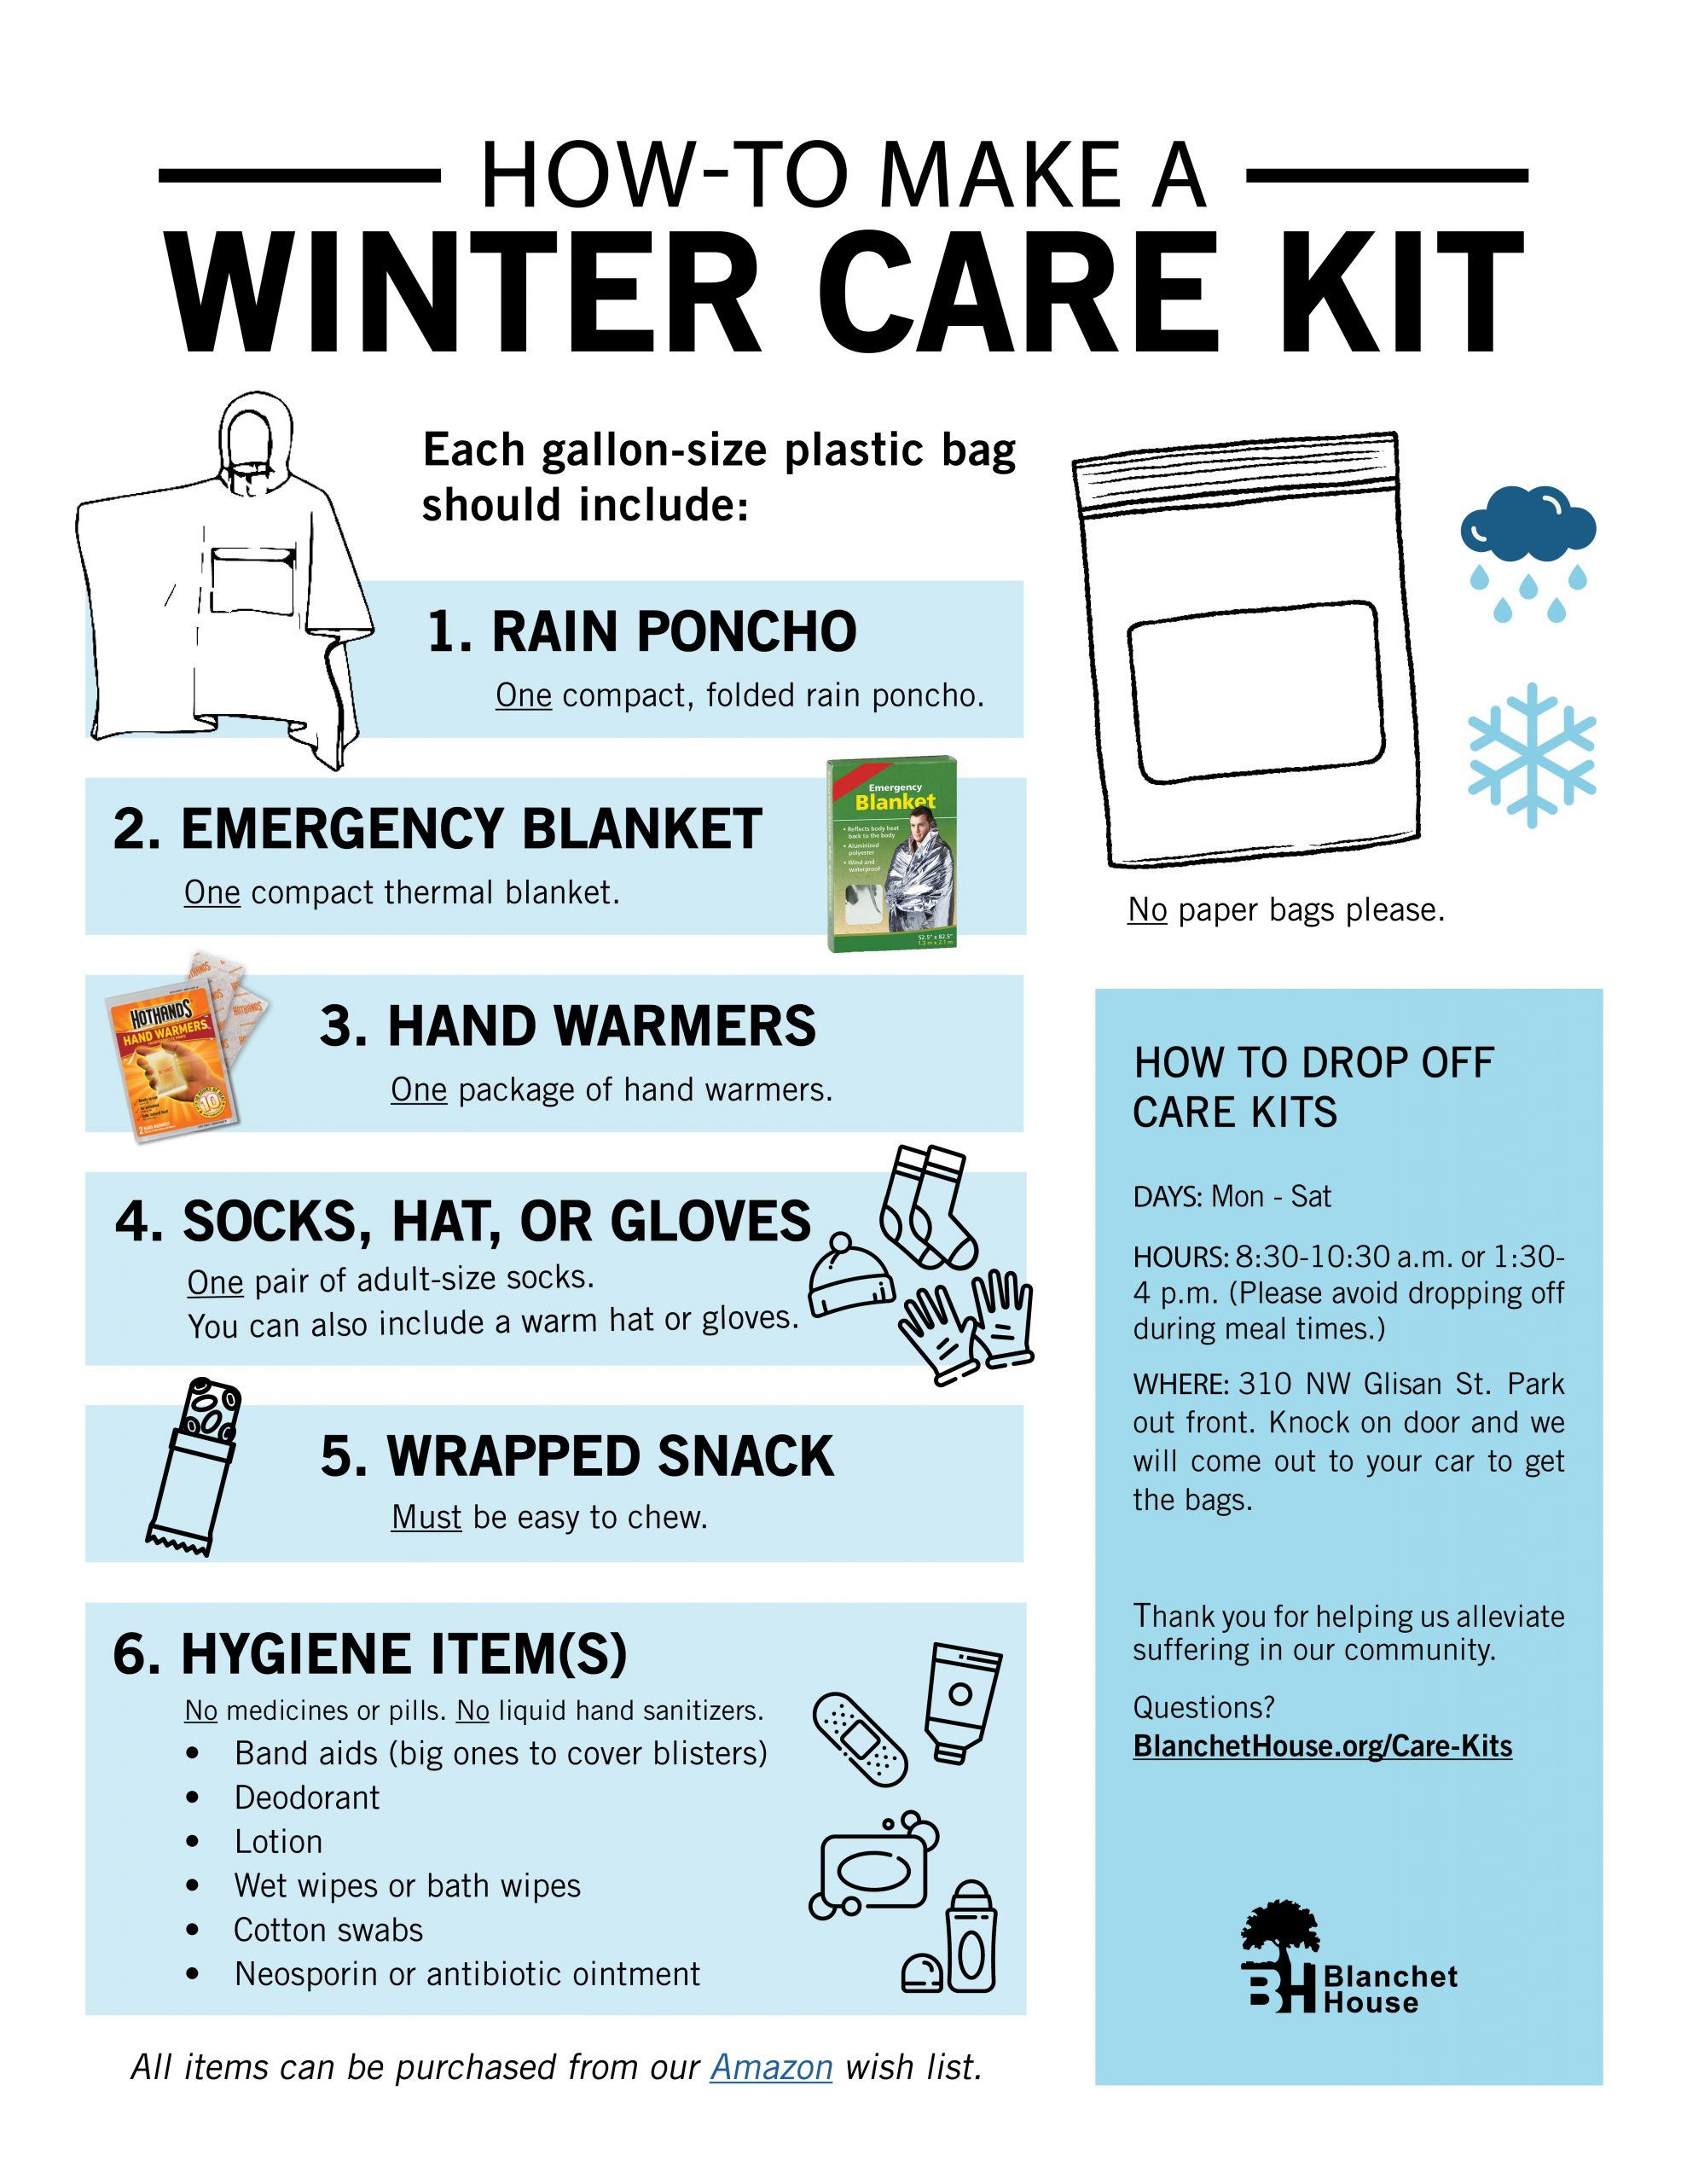 Winter Care Kit How To